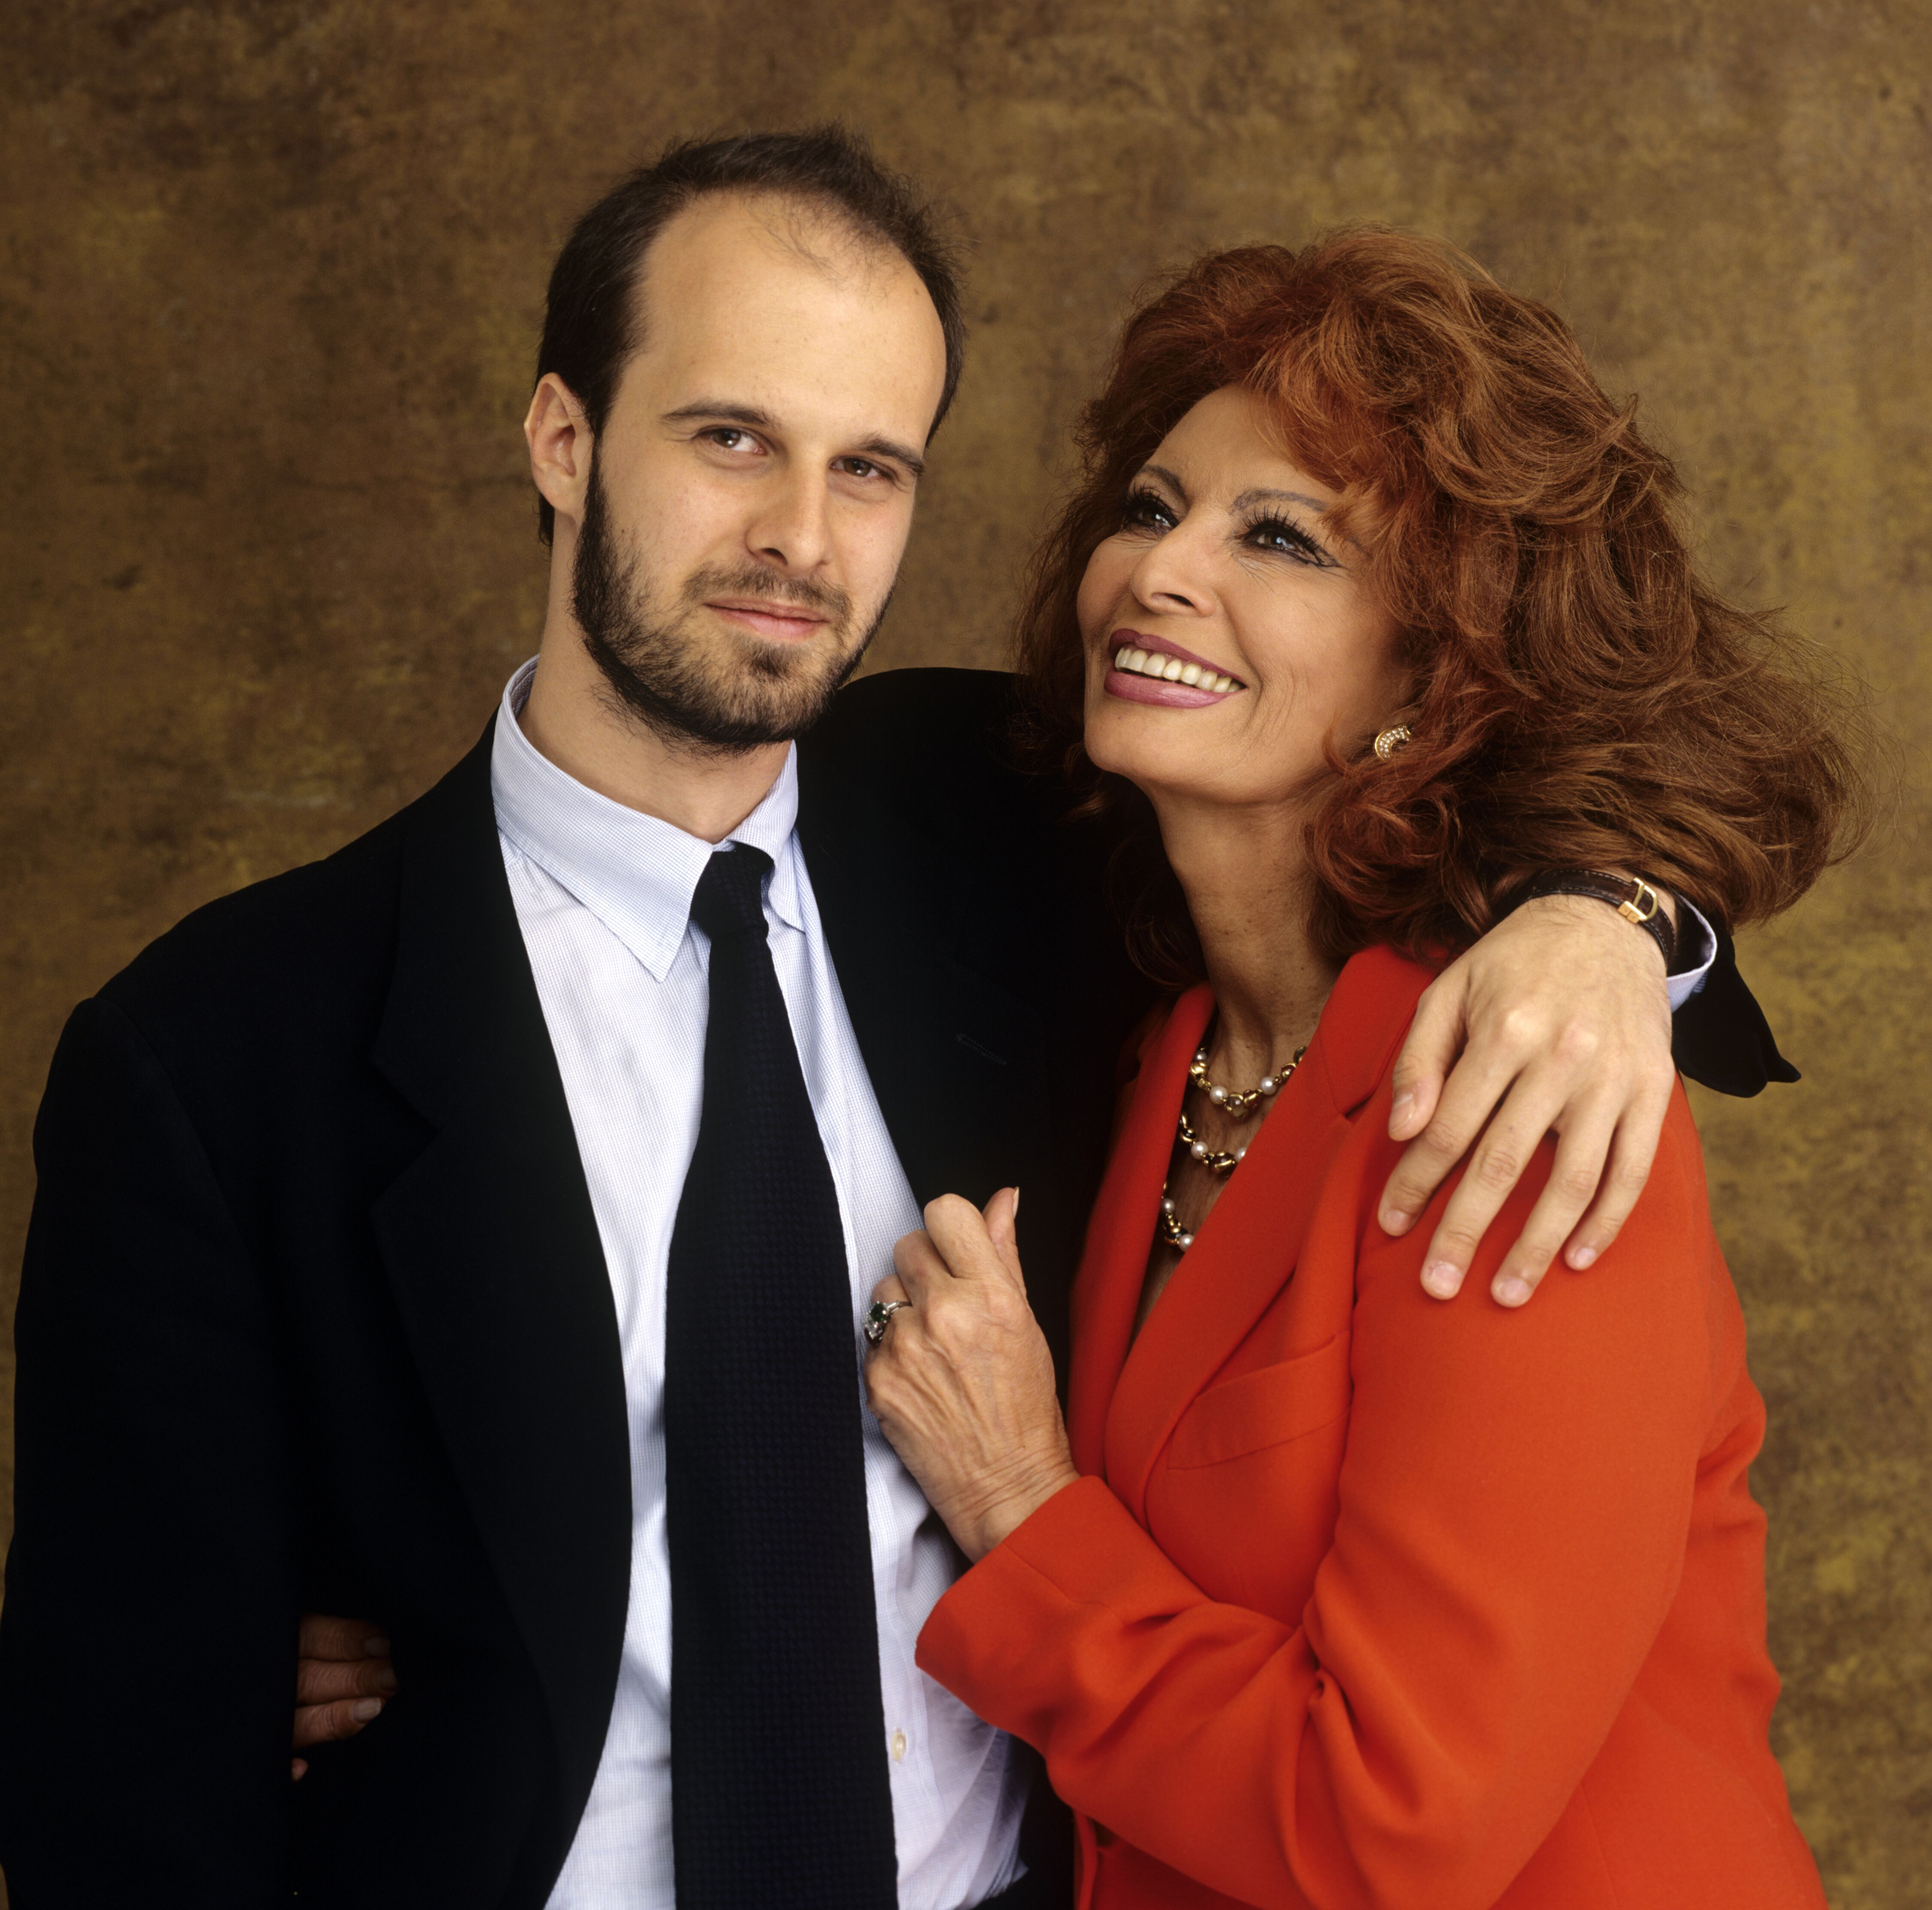 Sophia Loren and youngest son, Edoardo Ponti pose for a photo on May 30, 2001 in Toronto, Canada | Source: Getty Images